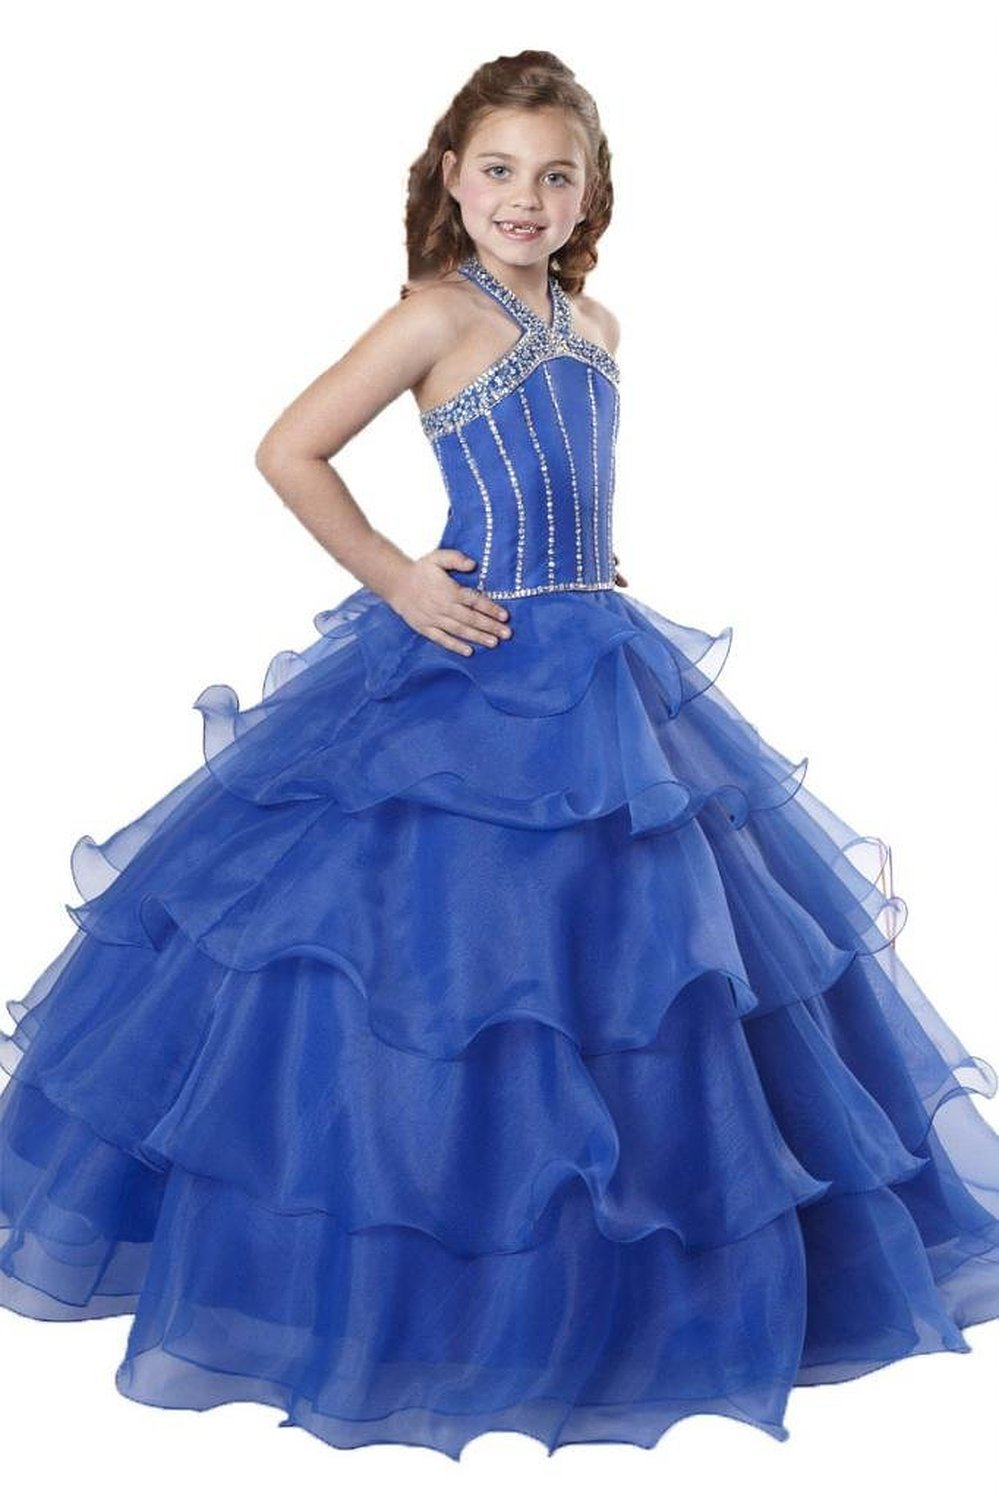 2016 classic flower girl royal blue DRESS OCCASION PARTY ...